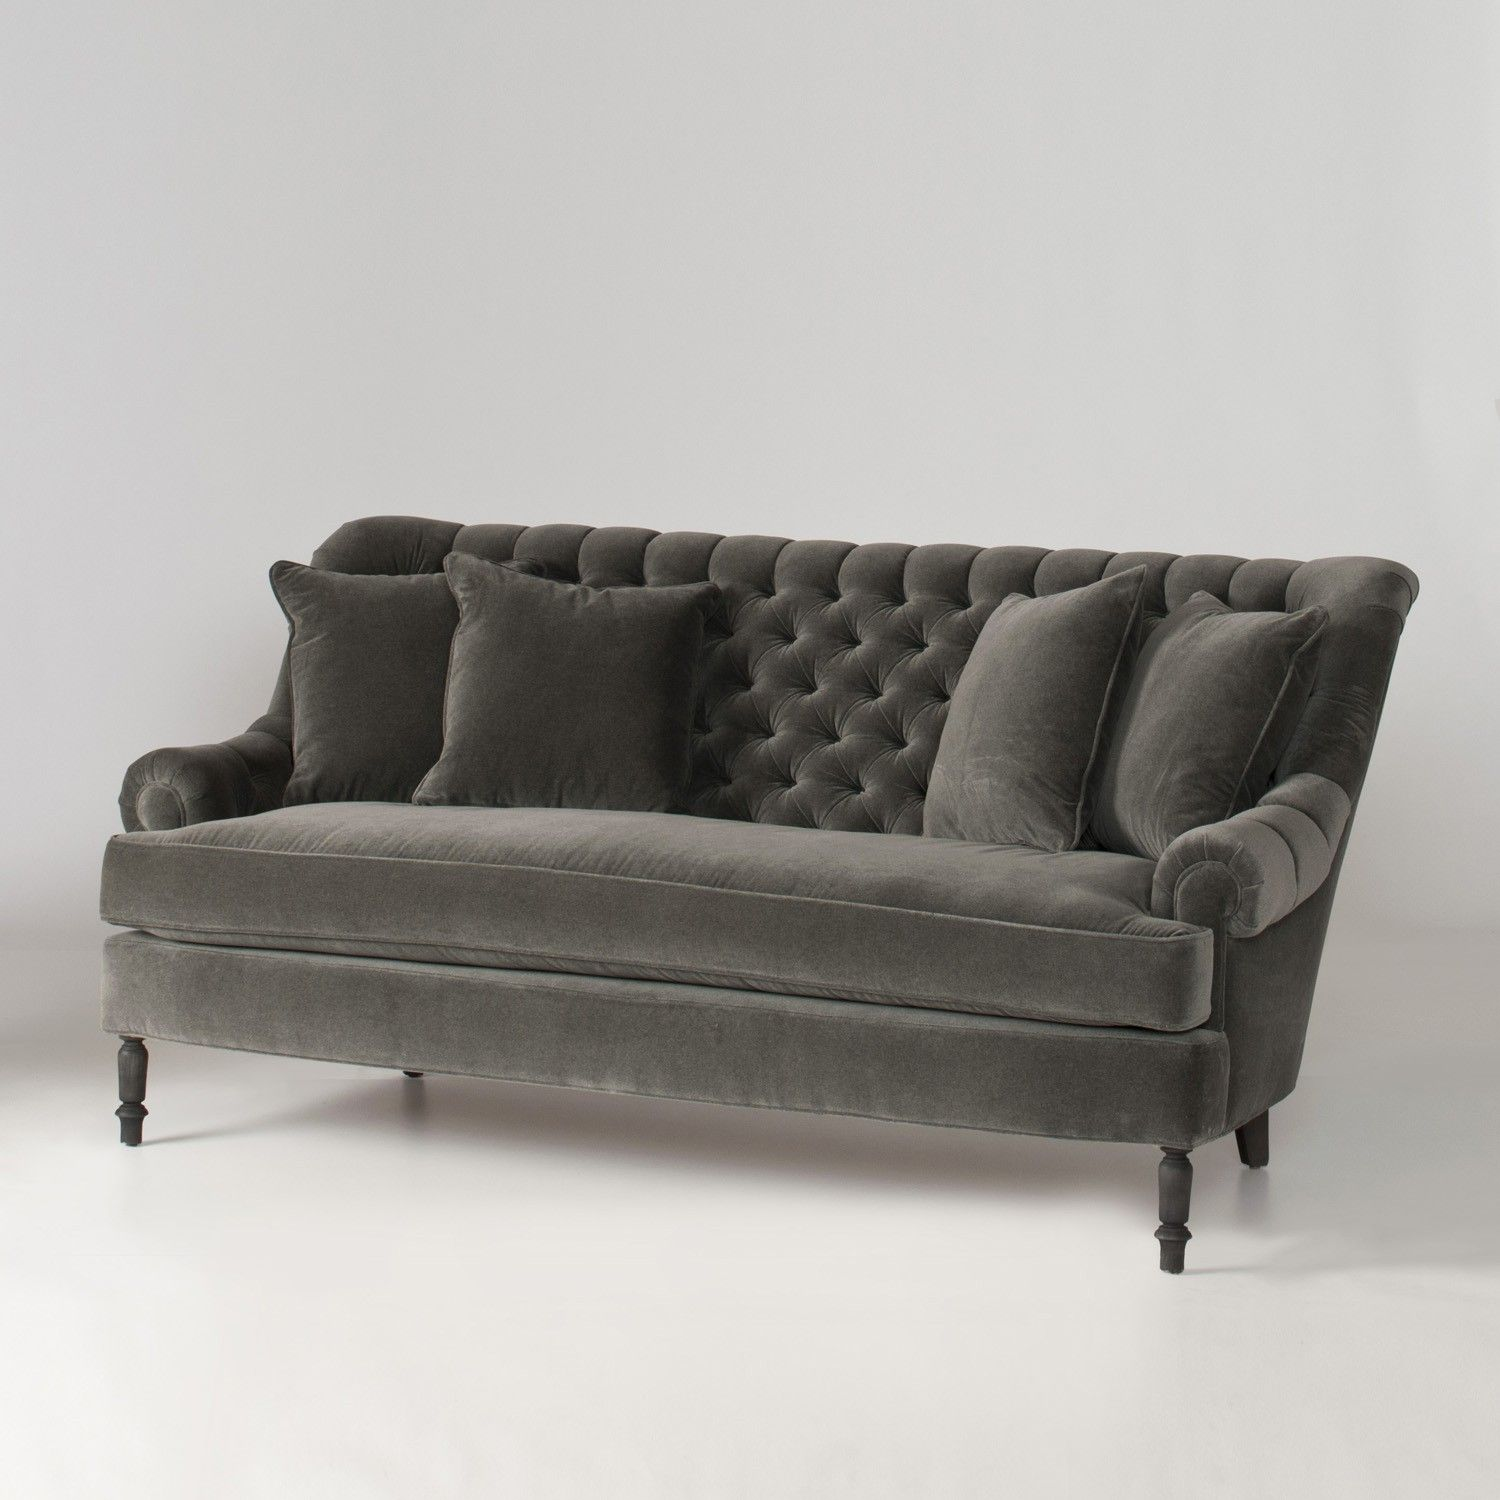 Adler Tufted Upholstered Sofa - Schoolhouse Electric & Supply Co